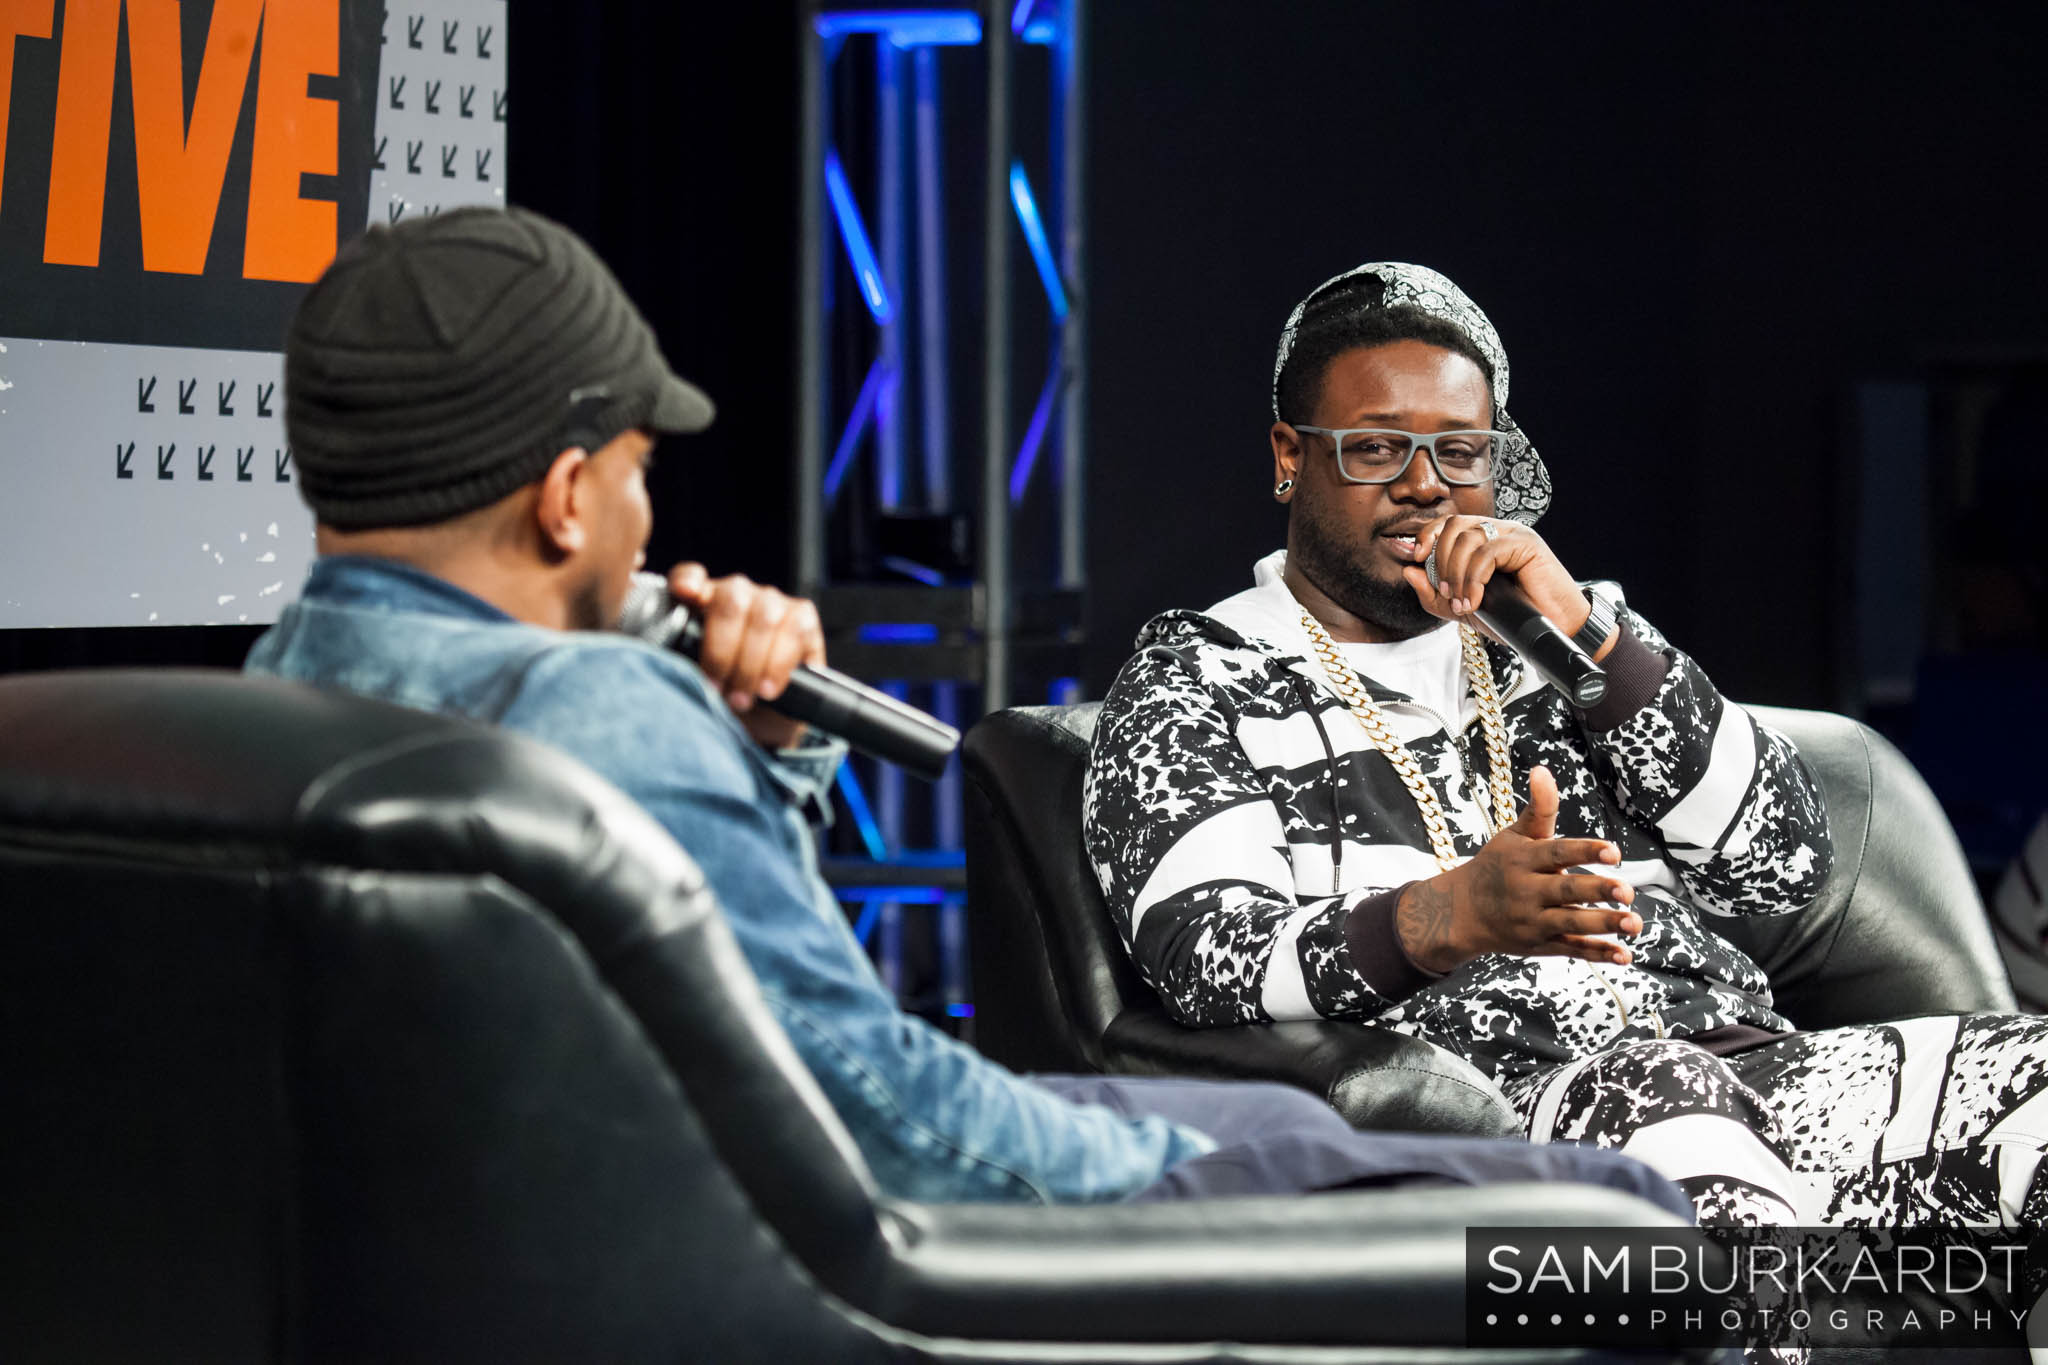 Sway and T-Pain interview at SXSW 2016